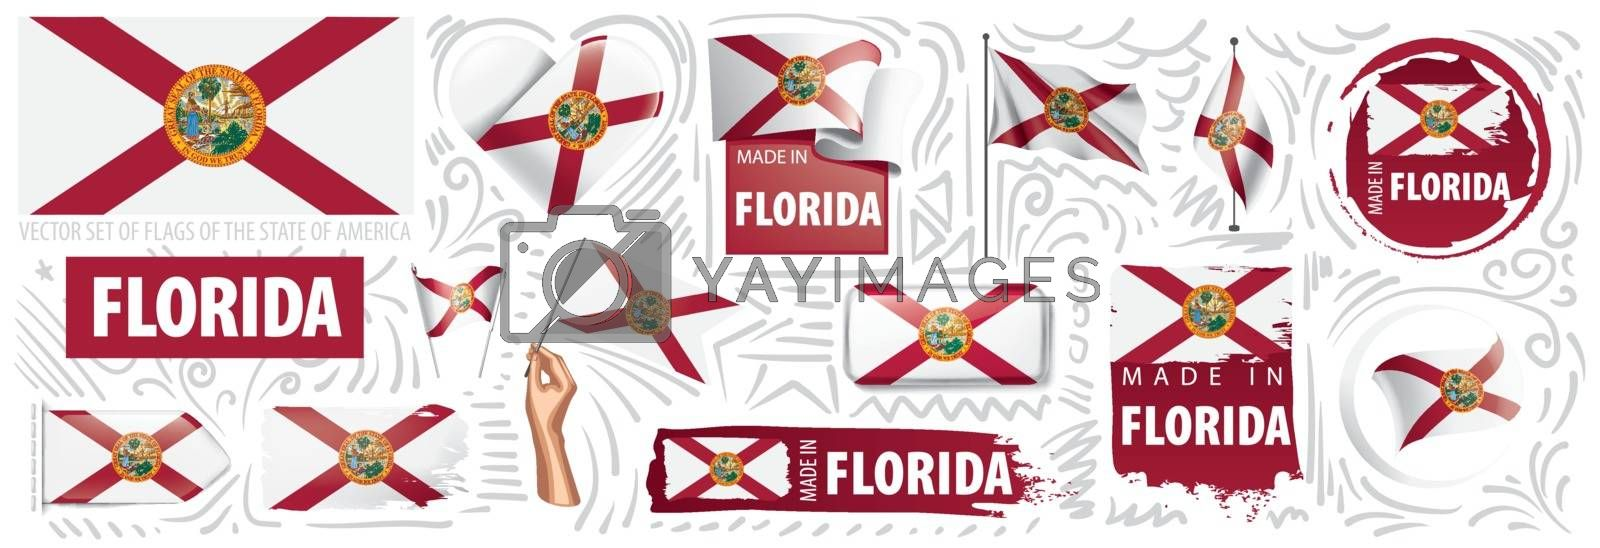 Vector set of flags of the American state of Florida in different designs.